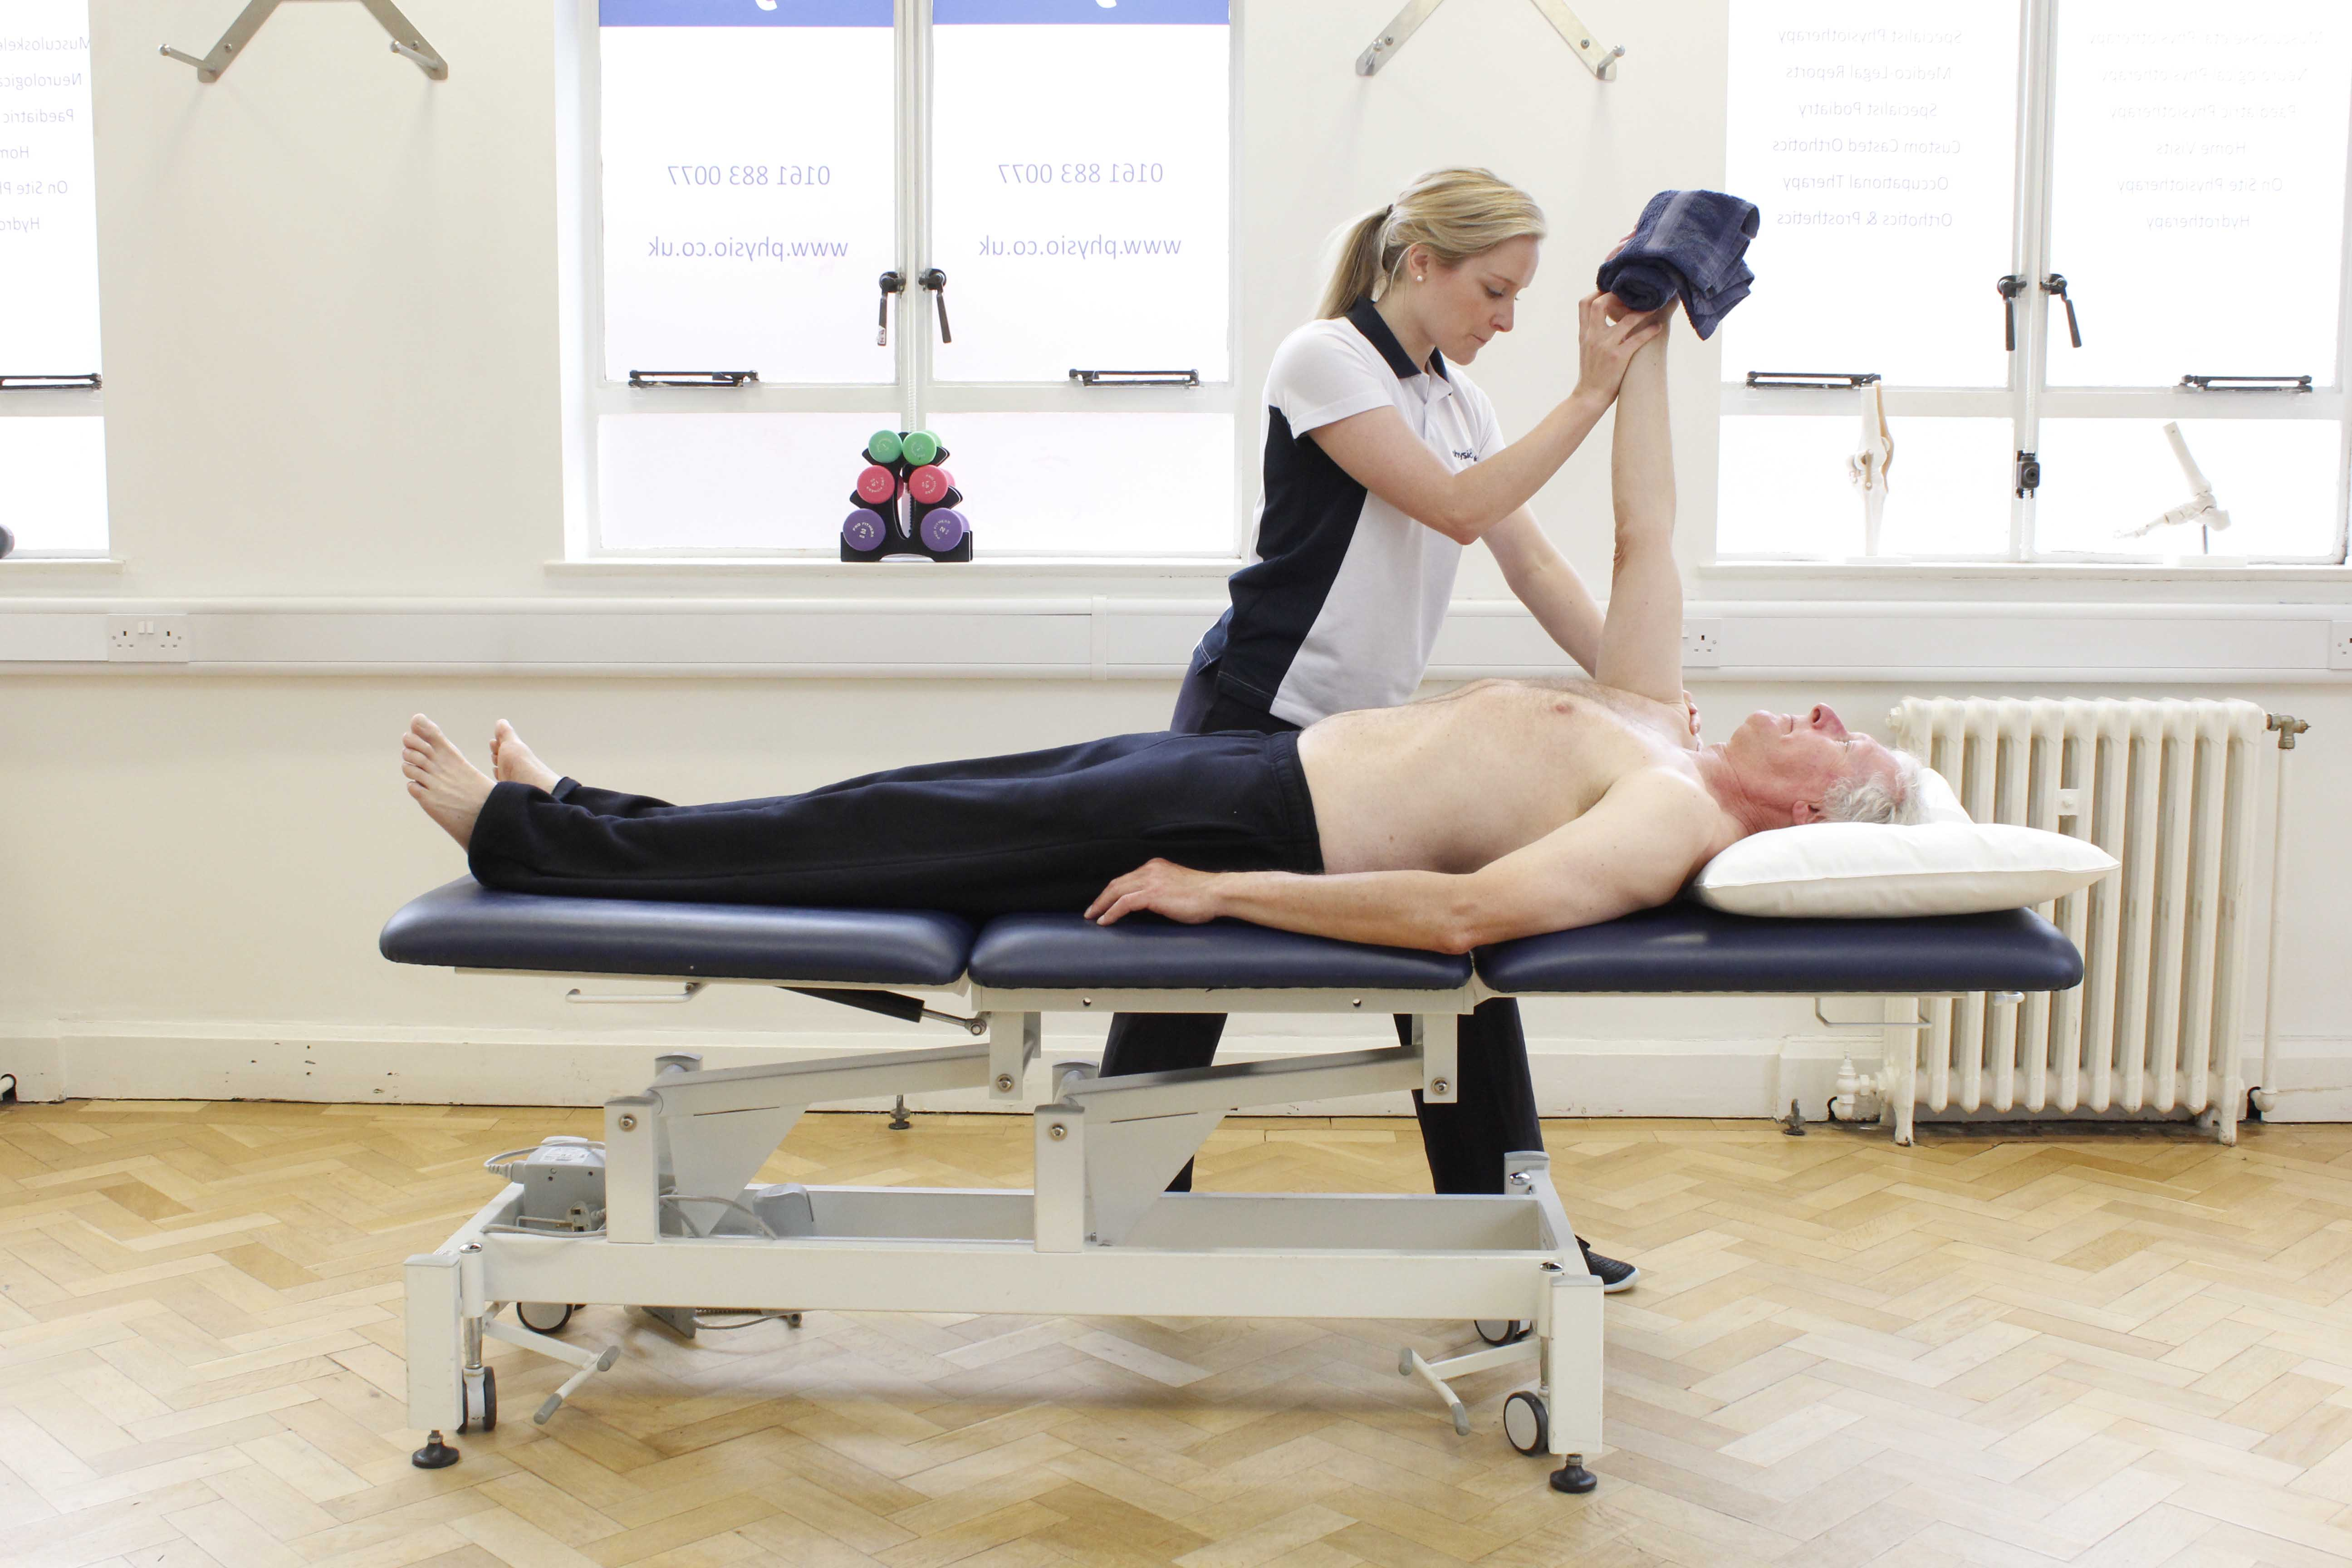 Upper limb mobilisation and stretches performed by a specialist neurological physiotherapist